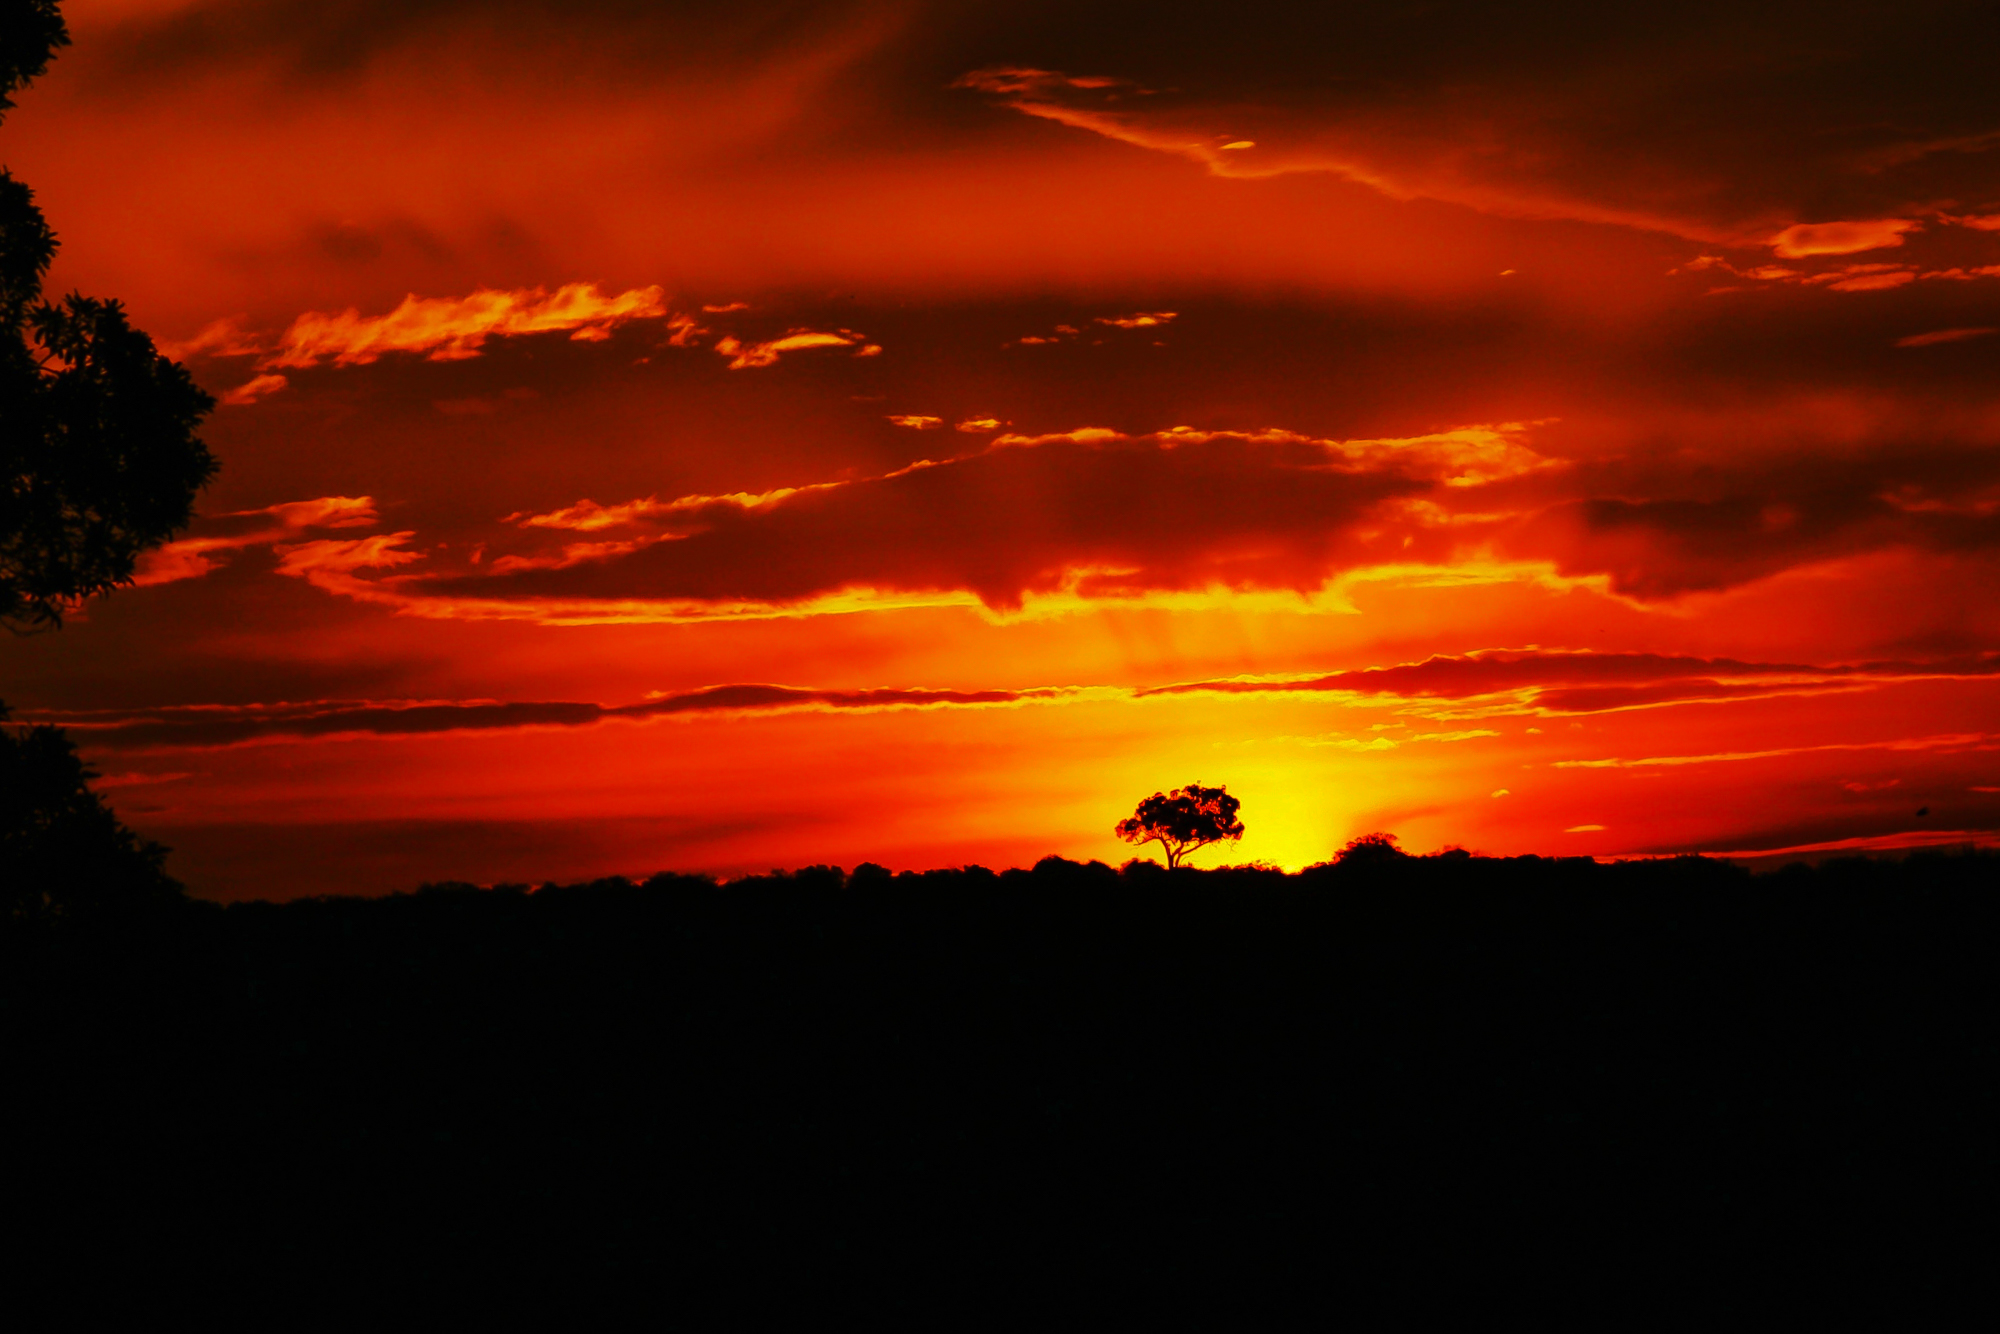 Sunset on the Mara in Kenya